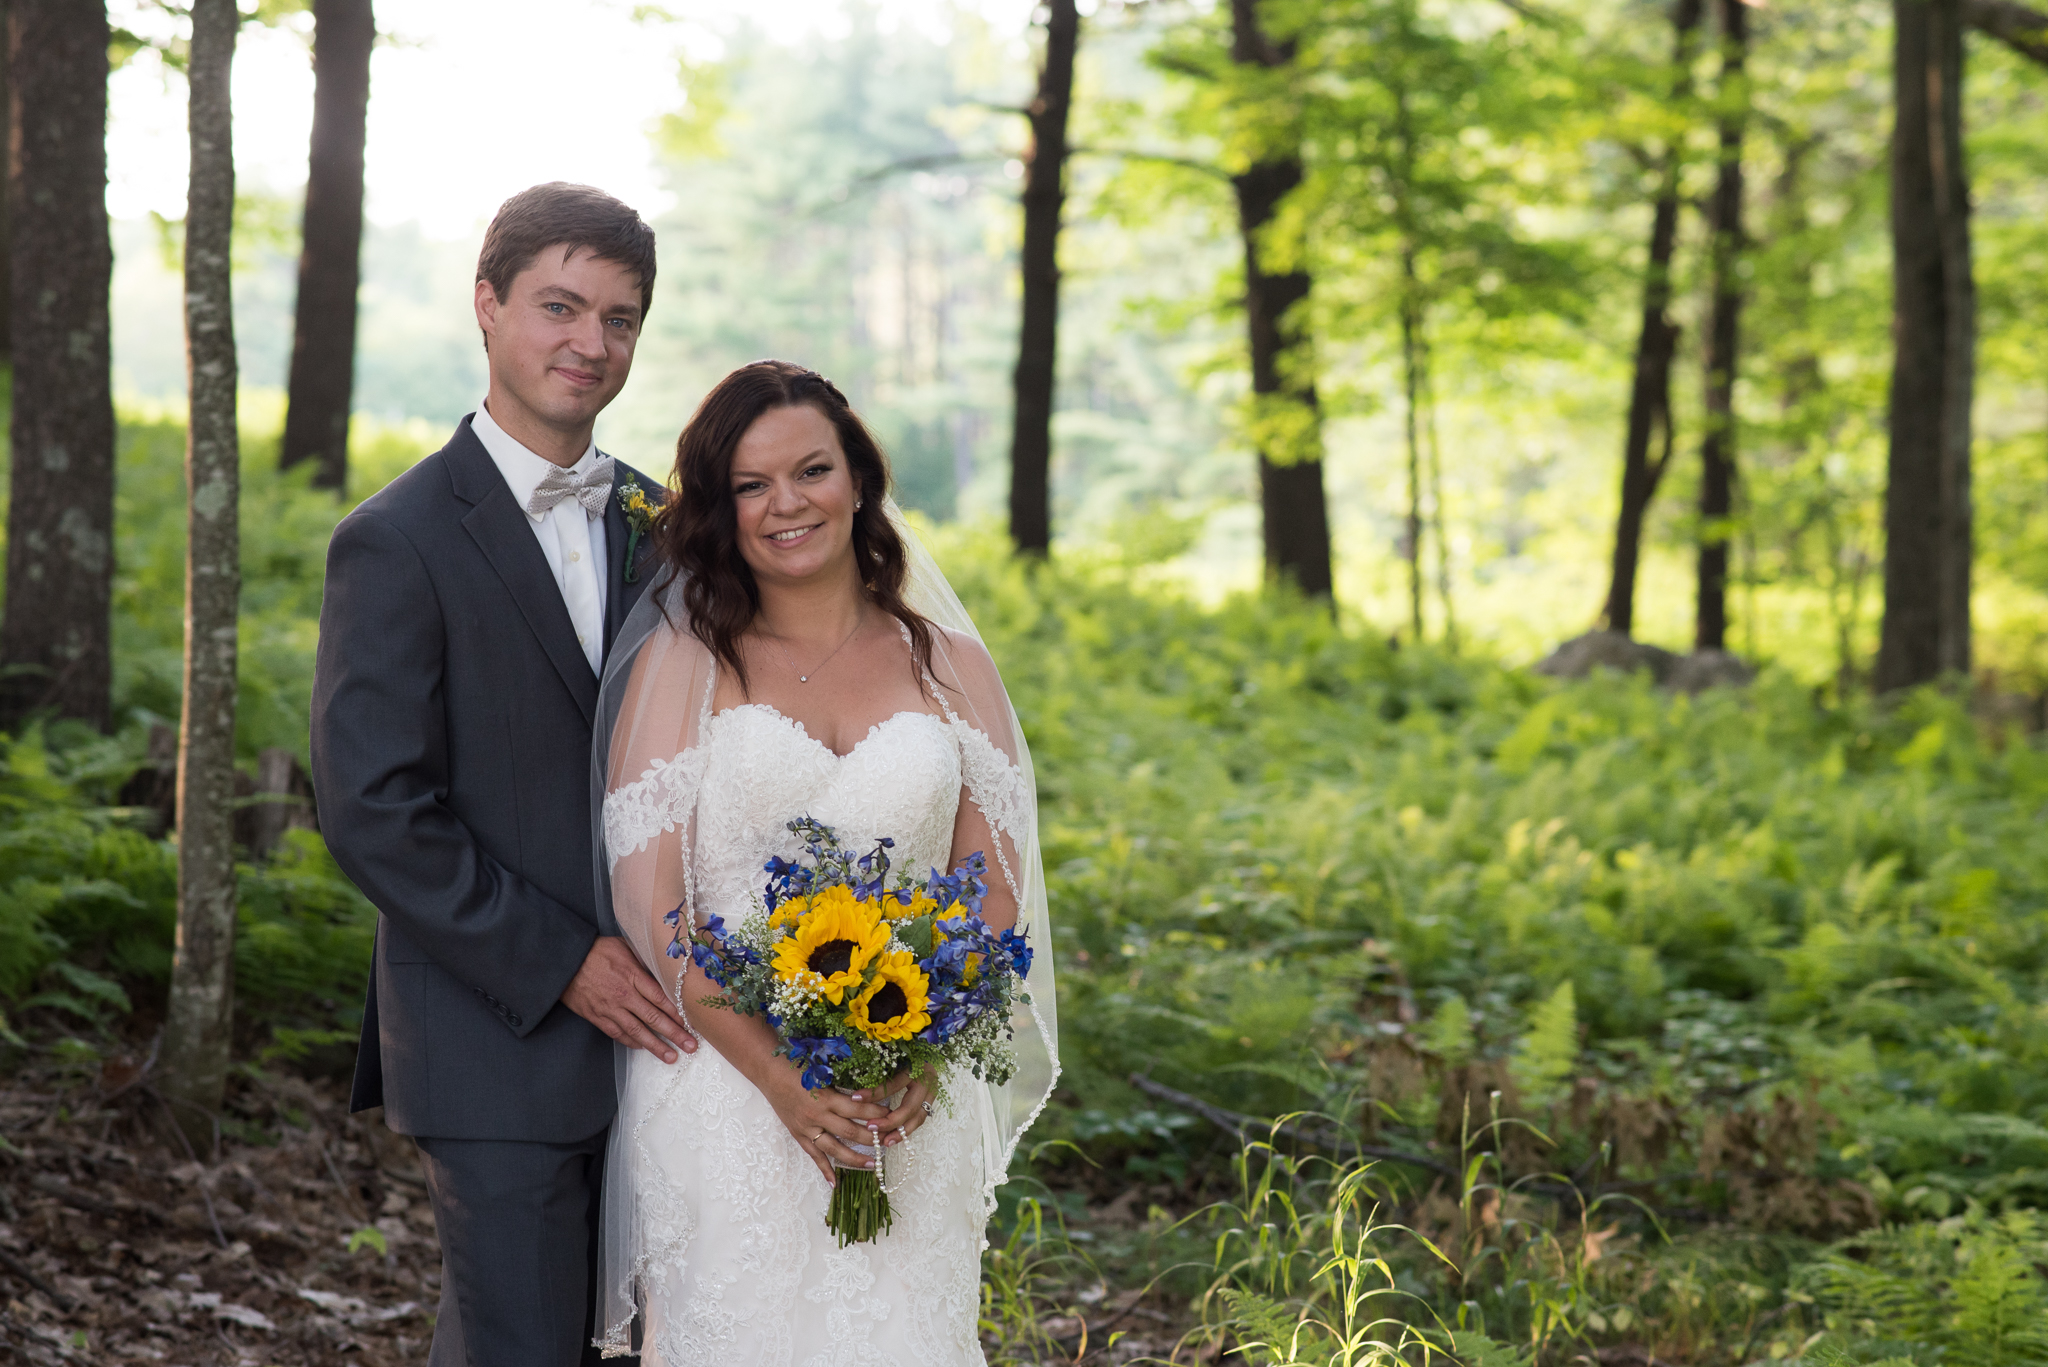 Zukas Hilltop Barn wedding venue photos in Spencer, MA photographed by Kara Emiy Krantz Photography